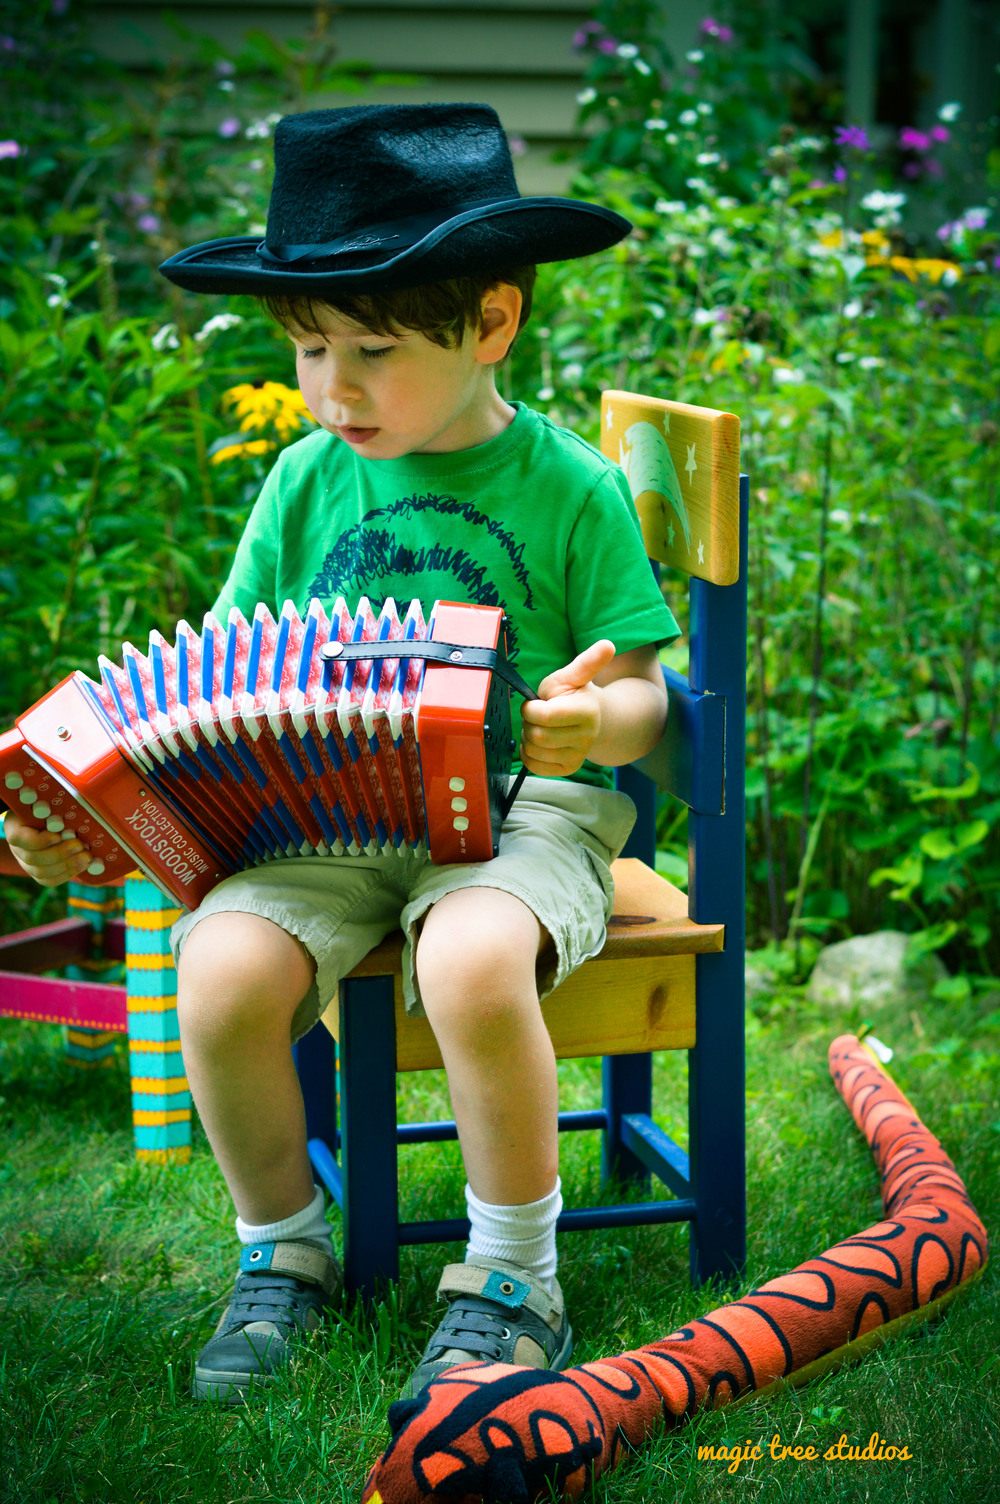 max on accordian.jpg